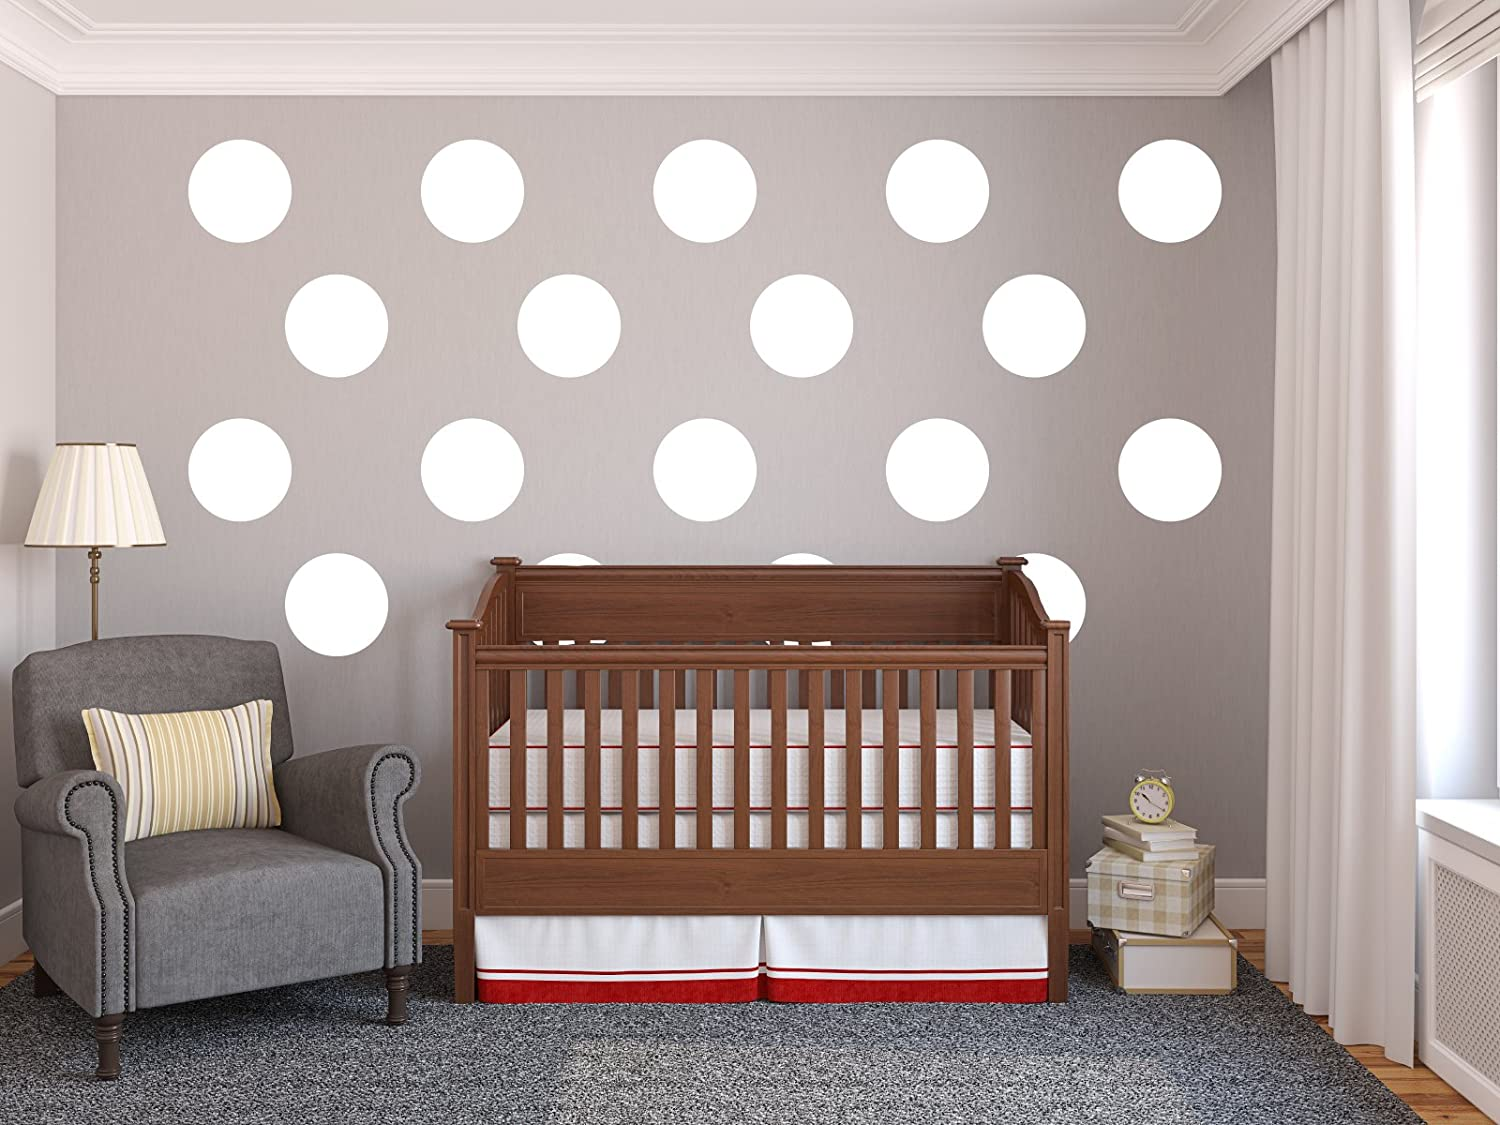 Amazon large wall polka dots 18 12 vinyl wall art decal amazon large wall polka dots 18 12 vinyl wall art decal for homes offices kids rooms nurseries schools high schools colleges amipublicfo Gallery